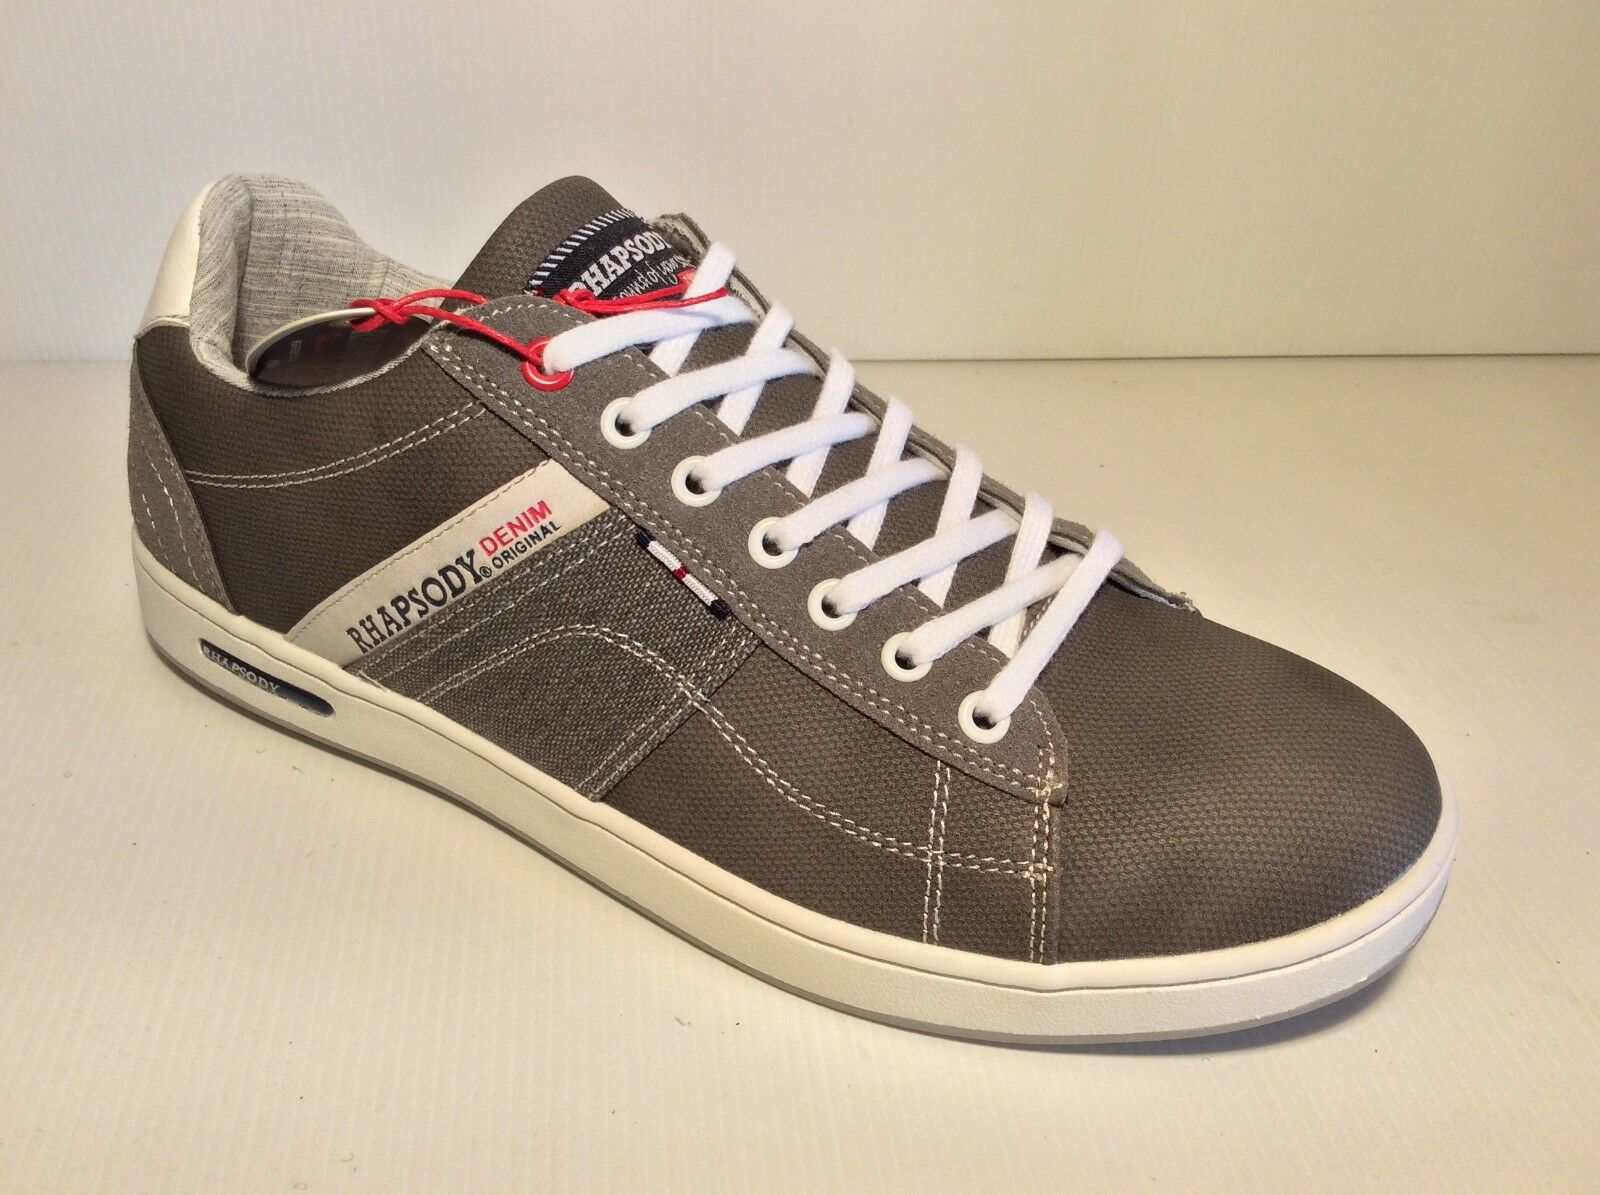 f7d6abf26f204 MEN S SHOES RHAPSODY 705101 COL GREY SNEAKERS MODE. Lacoste Fairlead 1171  BRZ CAM Leather ...